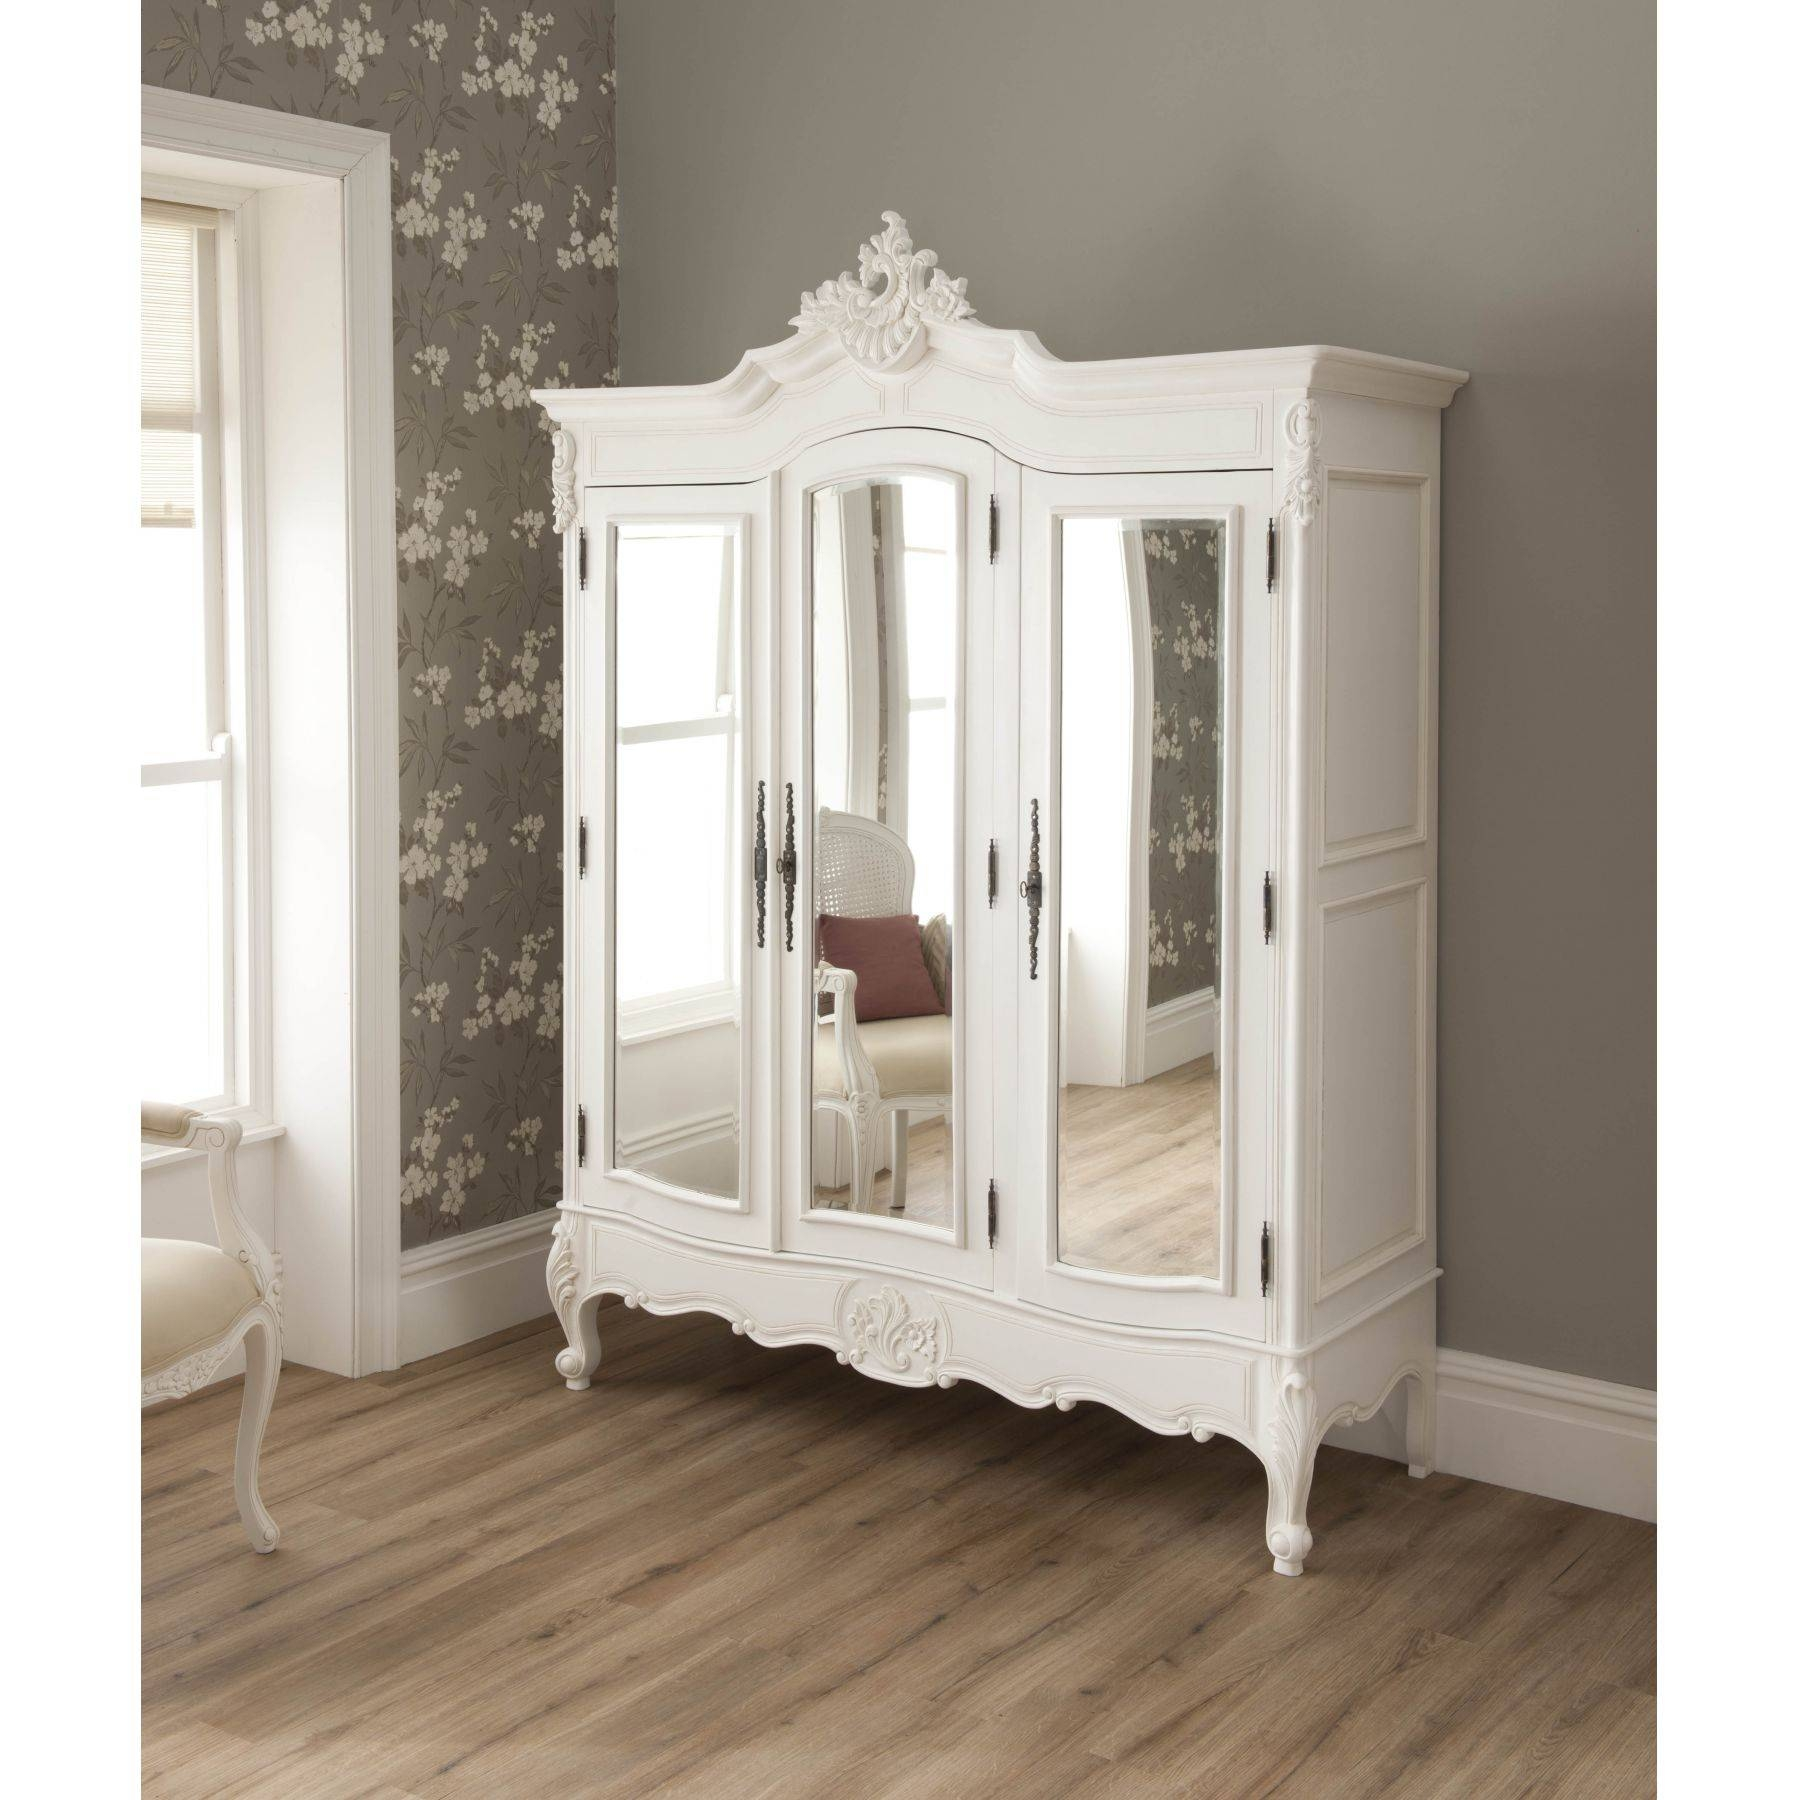 La Rochelle Shabby Chic Antique Style Wardrobe | Shabby Chic Furniture with White French Wardrobes (Image 9 of 15)